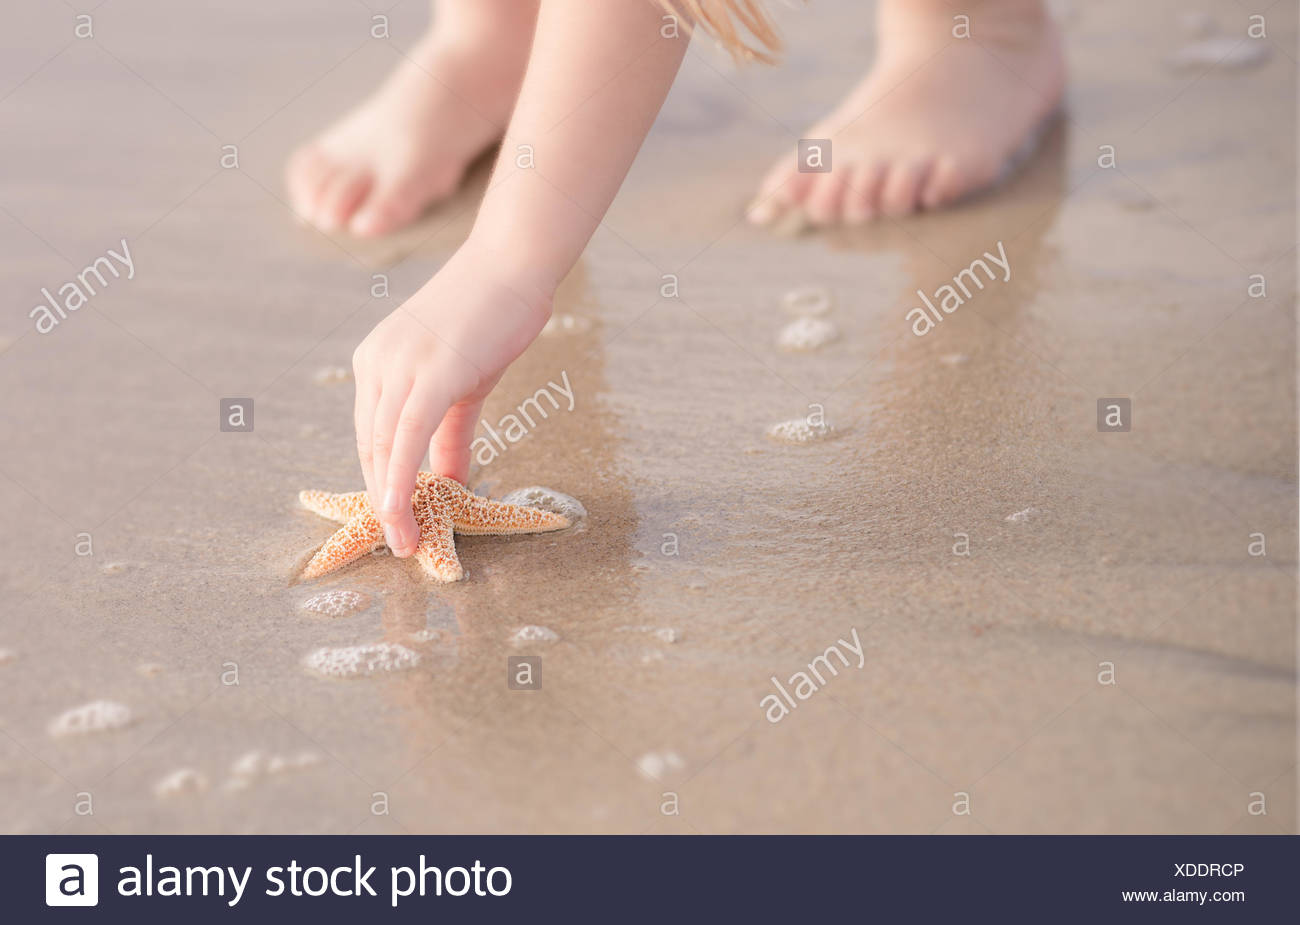 Close-up of a girl picking up a starfish - Stock Image